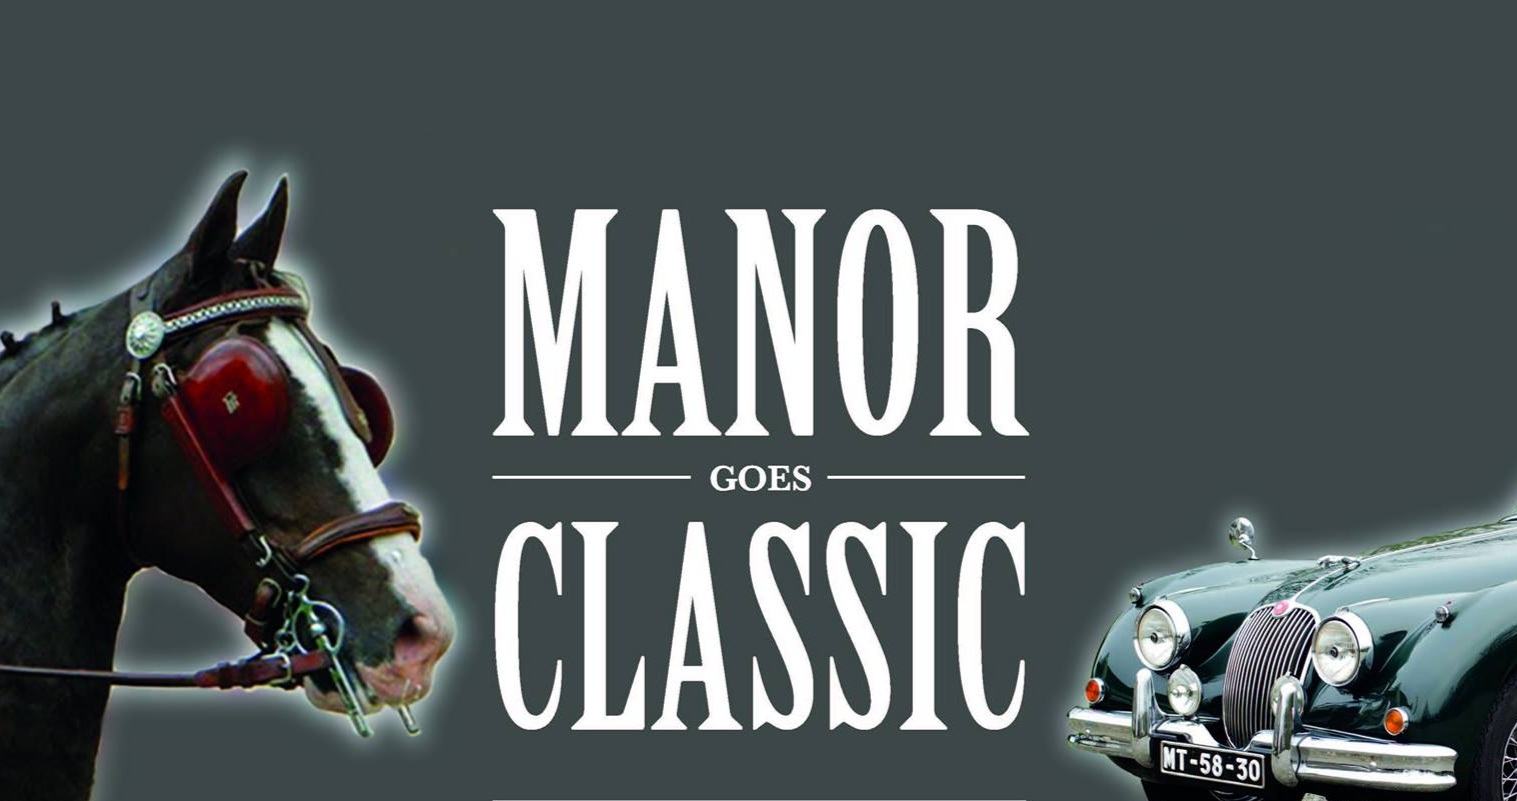 manor+goes+classic+banner+fb.jpg